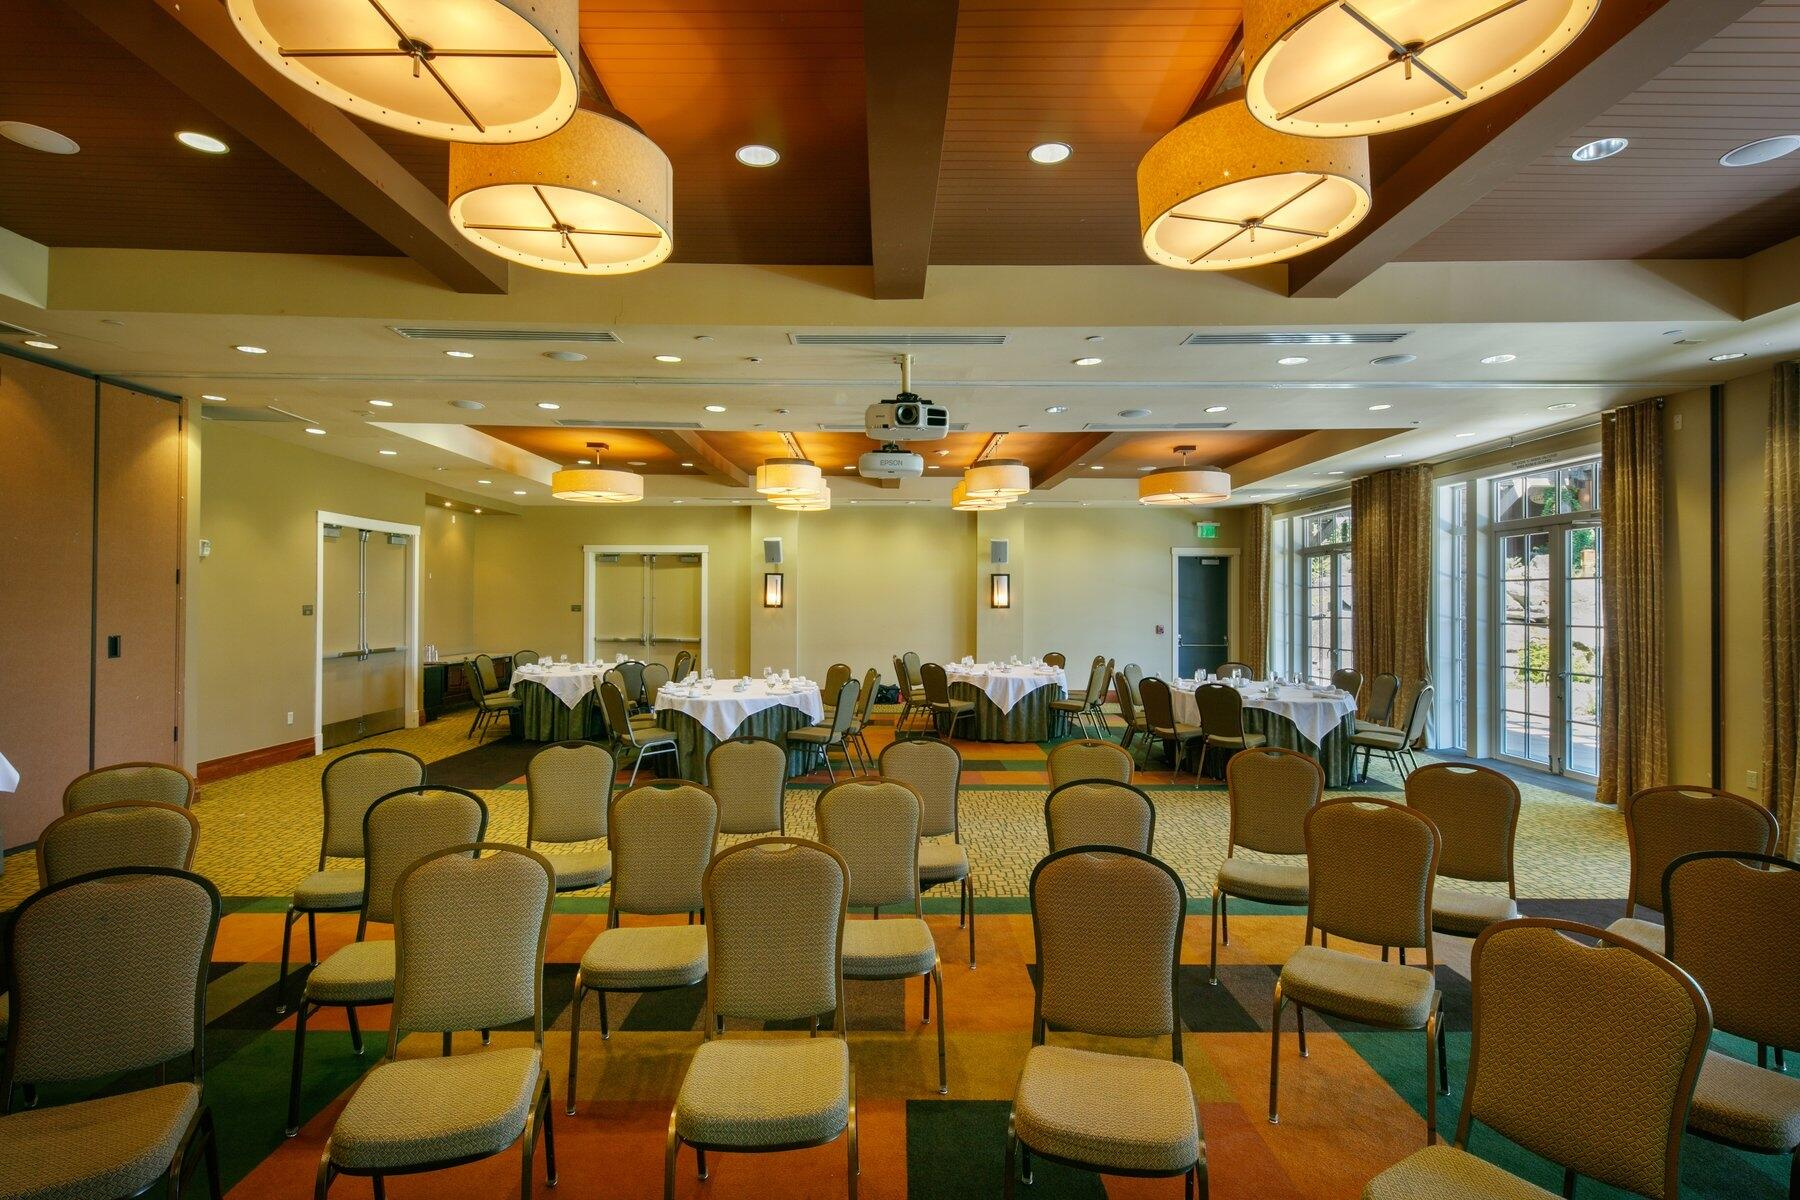 Banquet chairs in meeting space